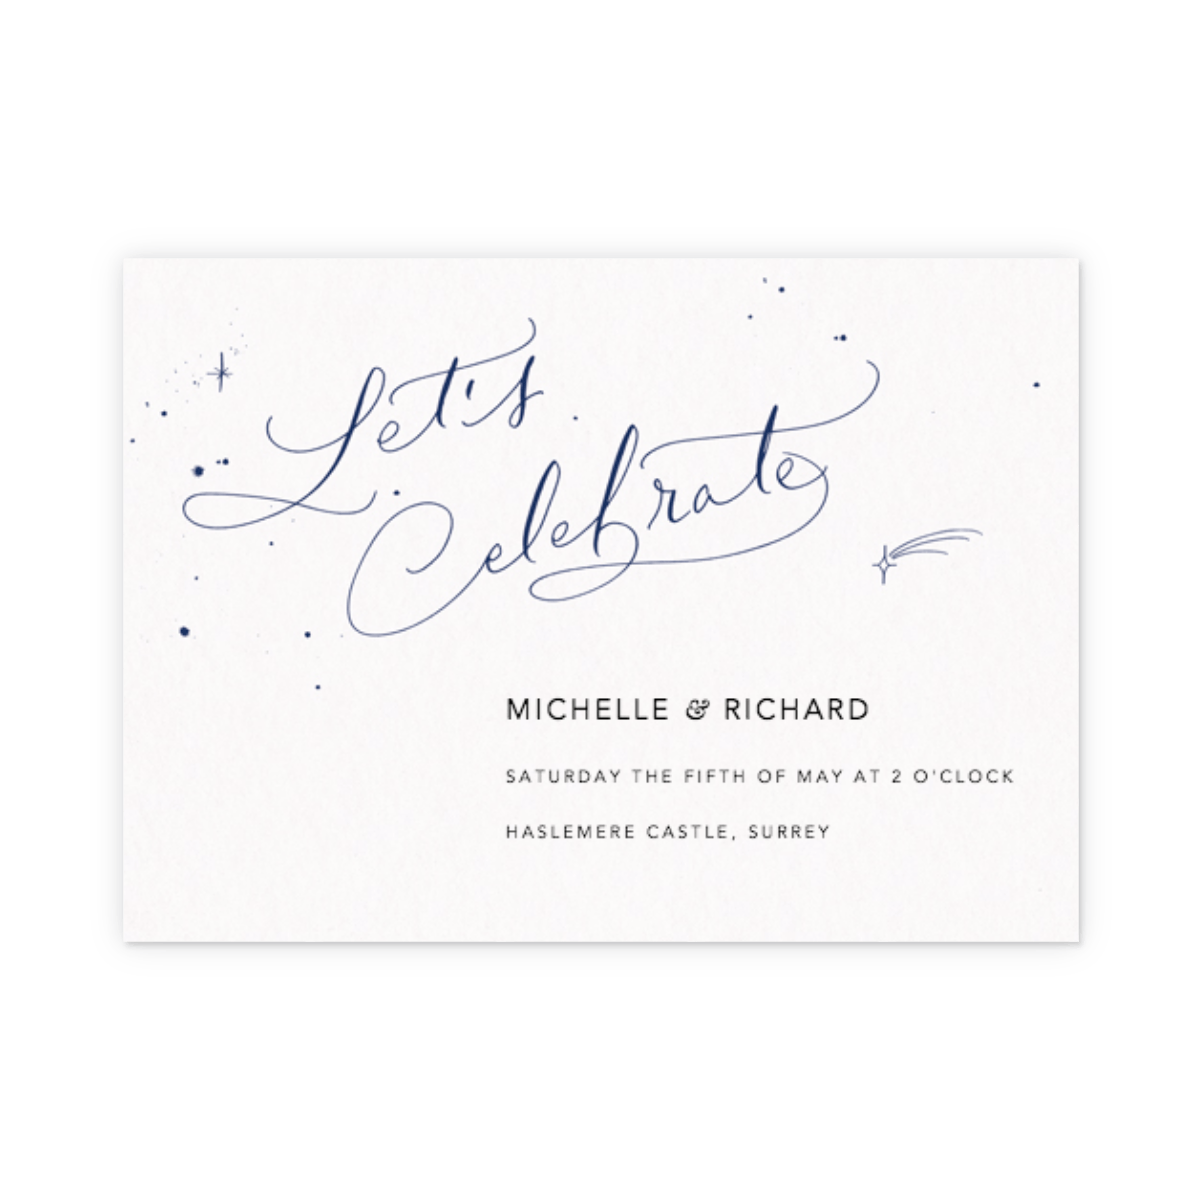 Https%3a%2f%2fwww.papier.com%2fproduct image%2f25924%2f10%2flet s celebrate starry navy 6490 front 1500628750.png?ixlib=rb 1.1